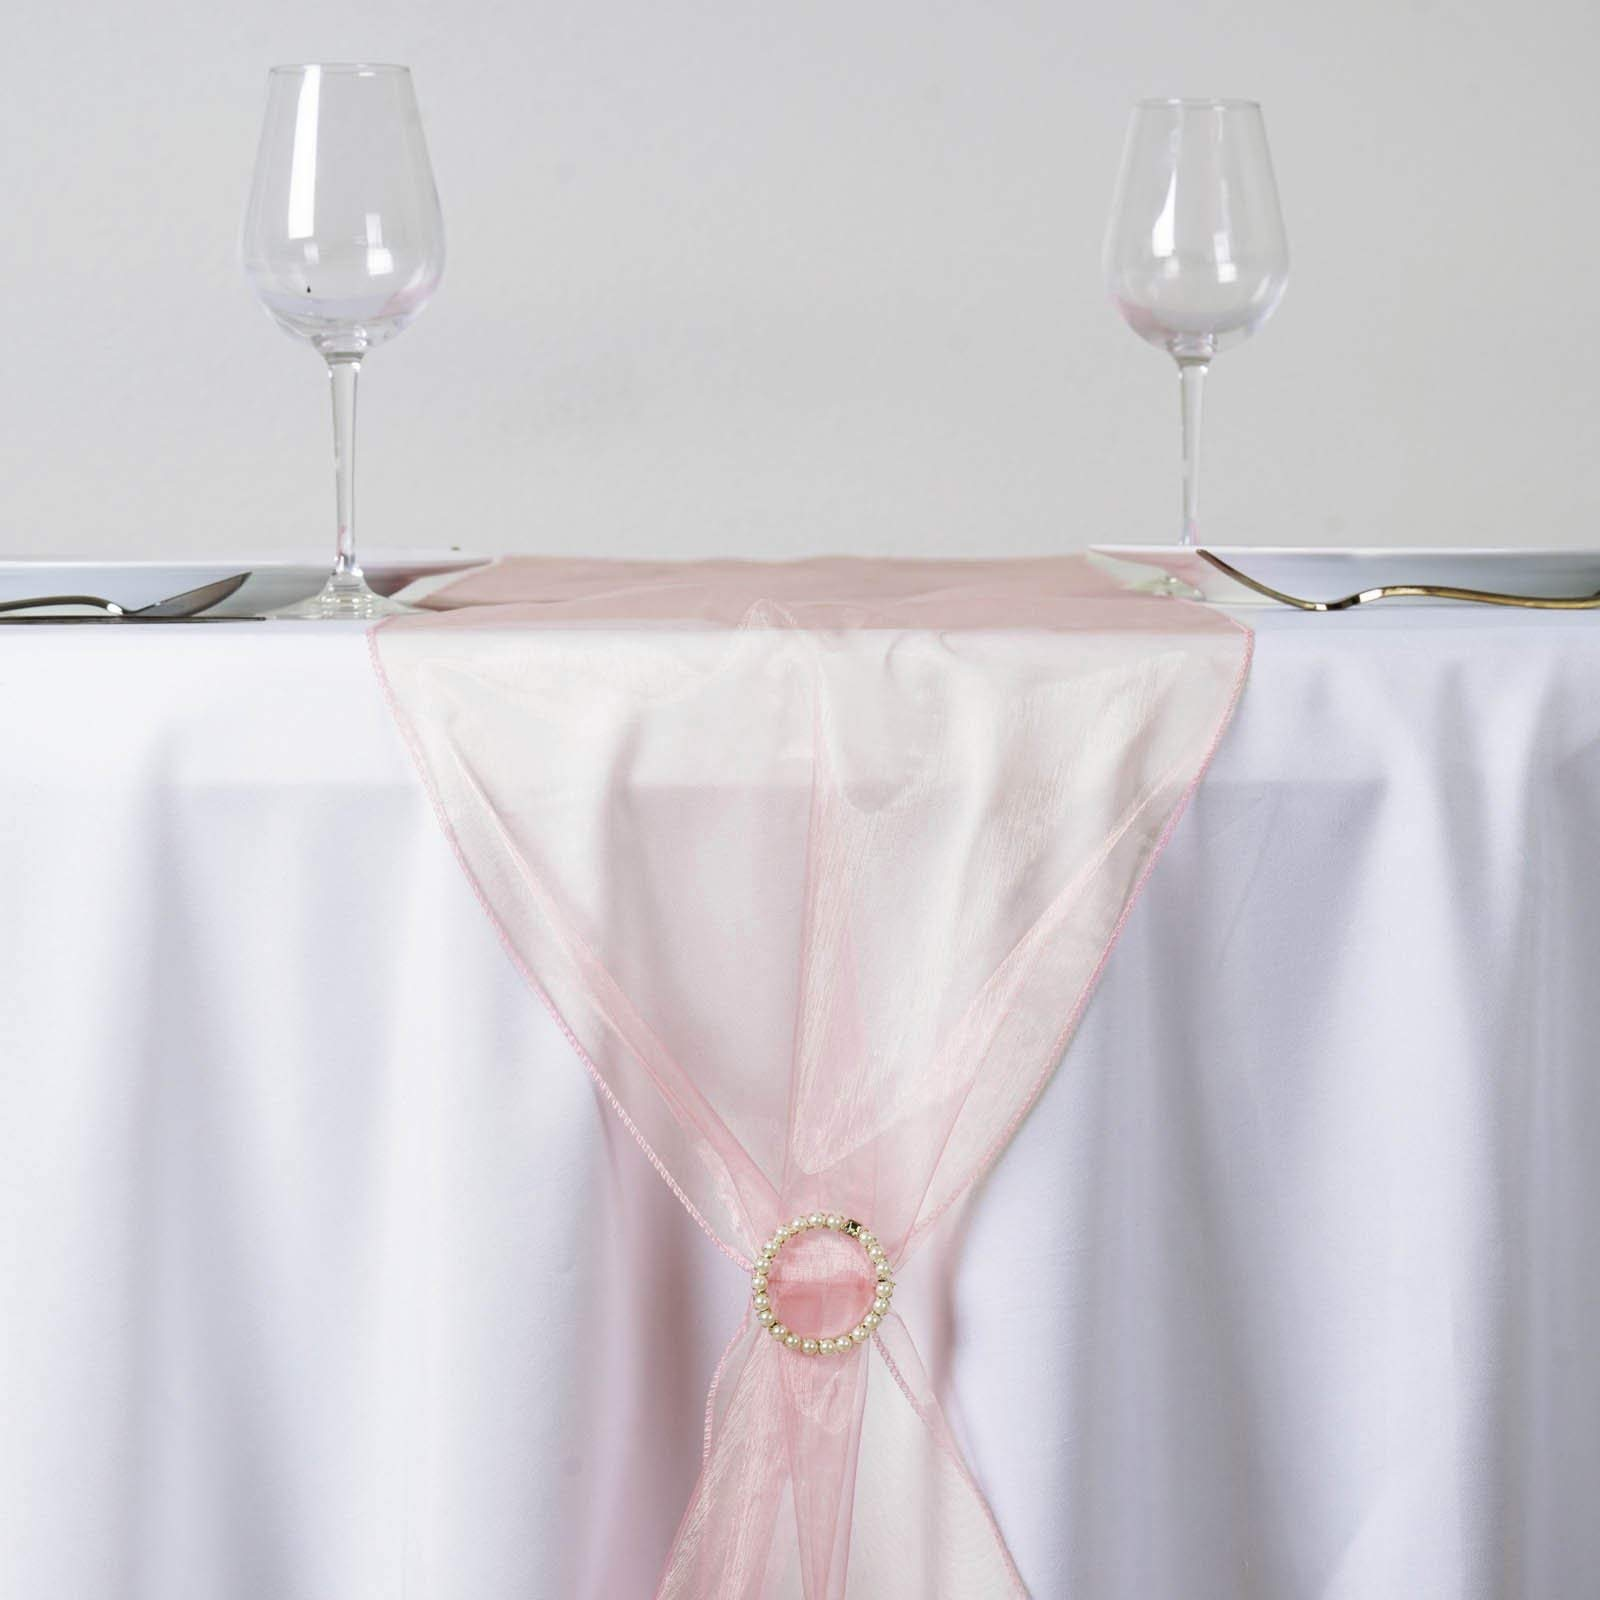 Efavormart Blush Premium Organza Table Top Runner for Weddings Birthday Party Banquets Decor Fit Rectangle and Round Table